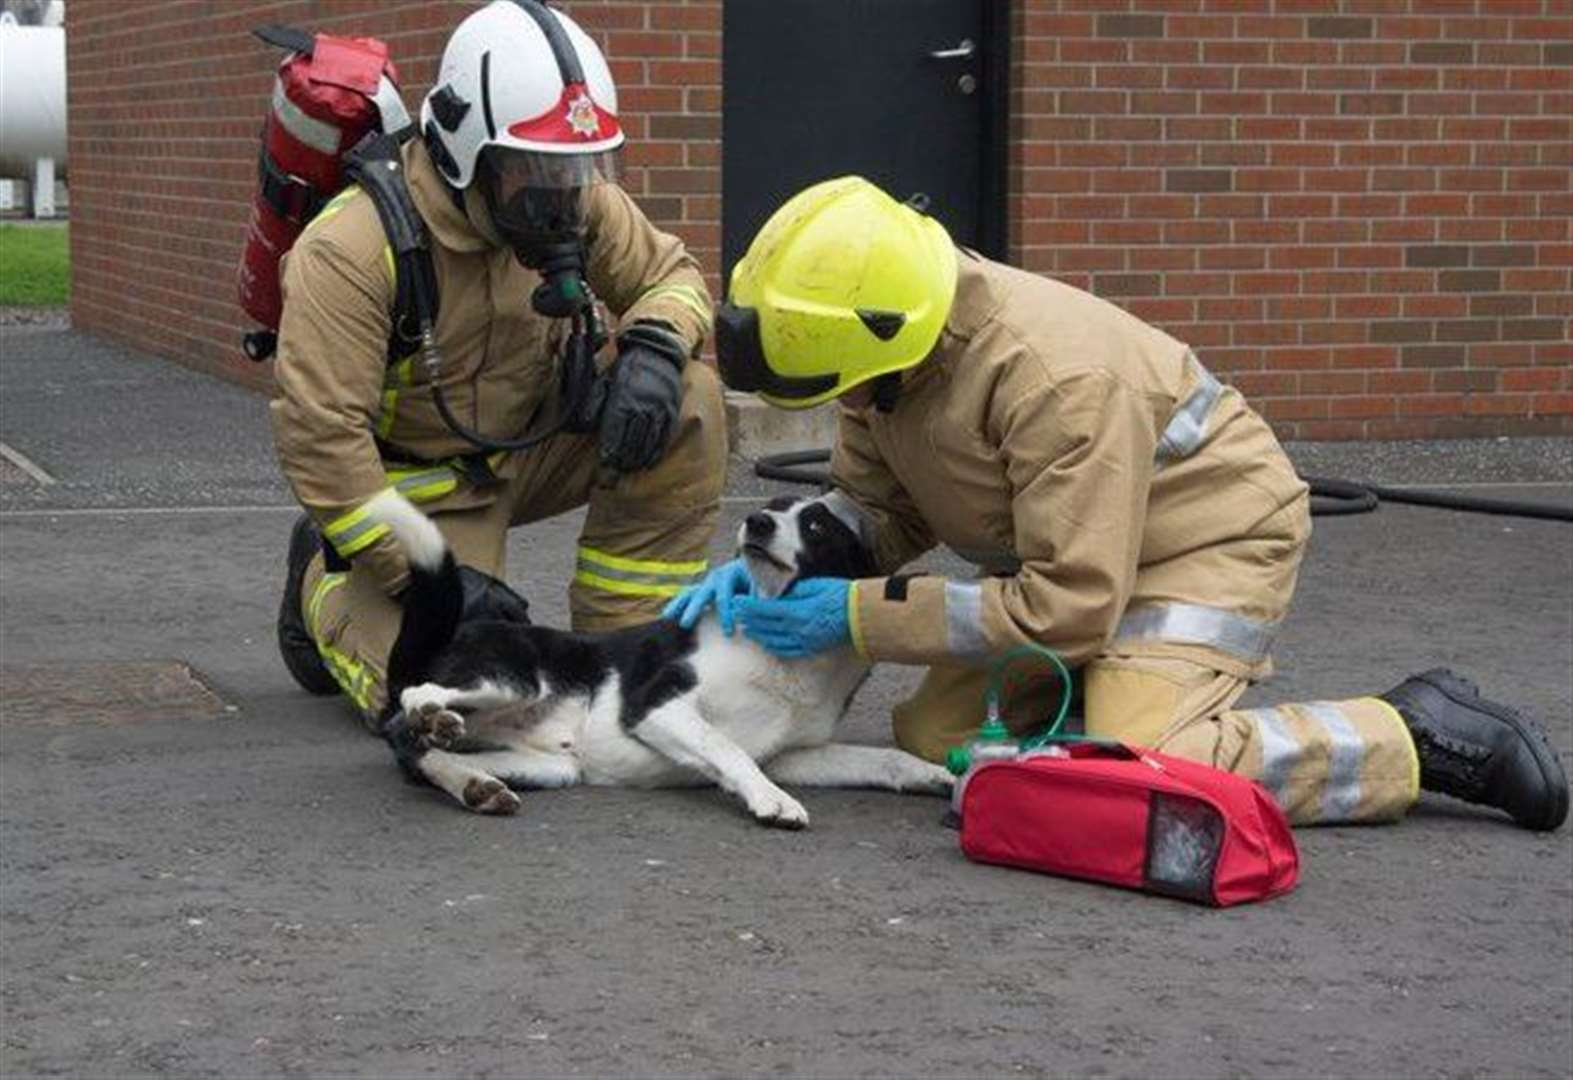 Campaign to ensure fire crews have animal lifesaving equipment